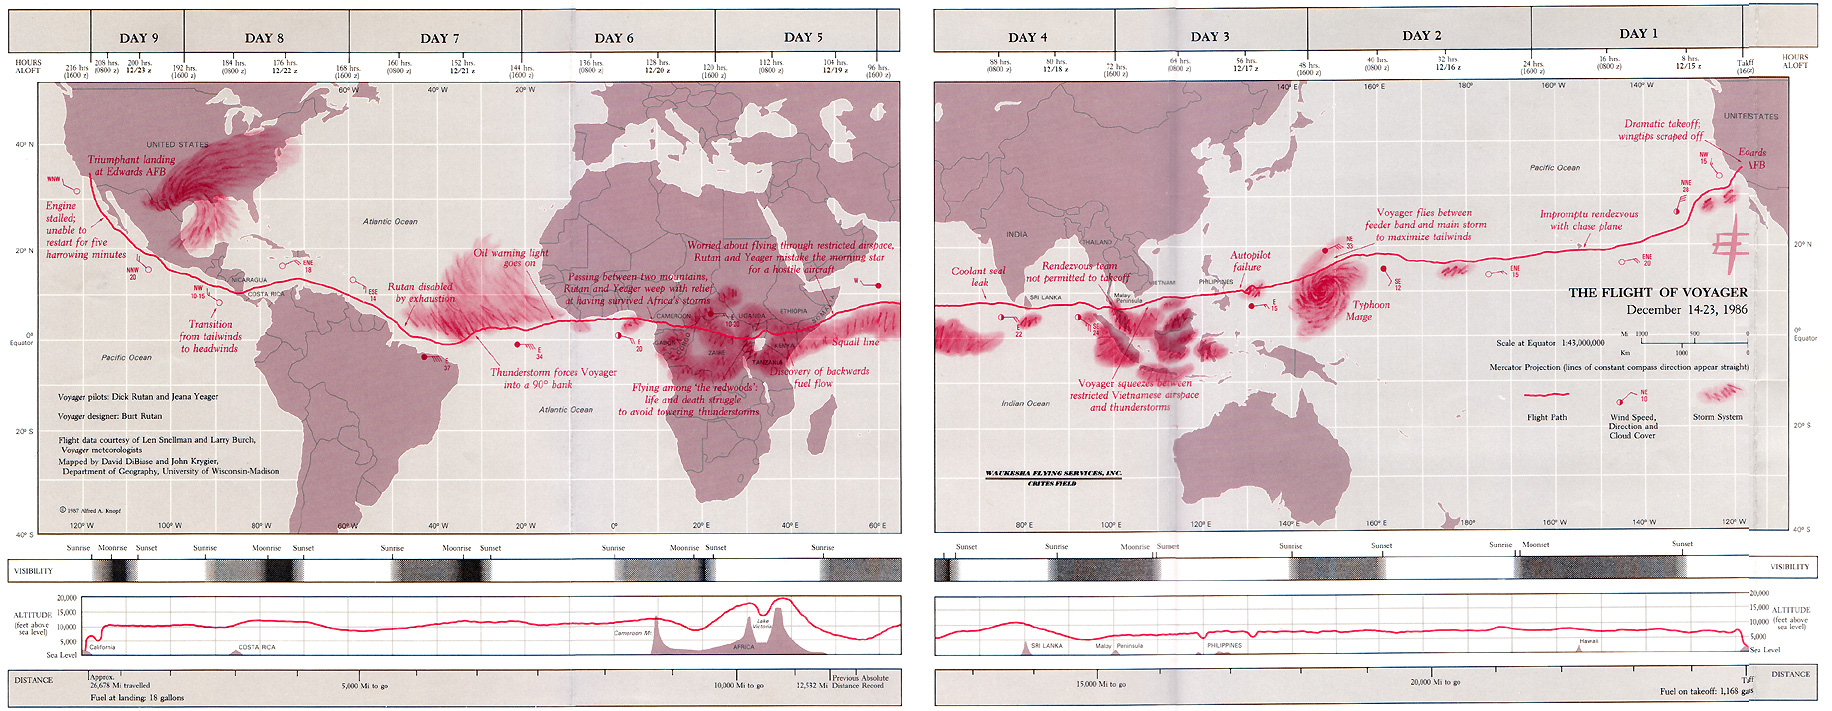 Making real maps making maps diy cartography the flight of voyager 1987 gumiabroncs Image collections